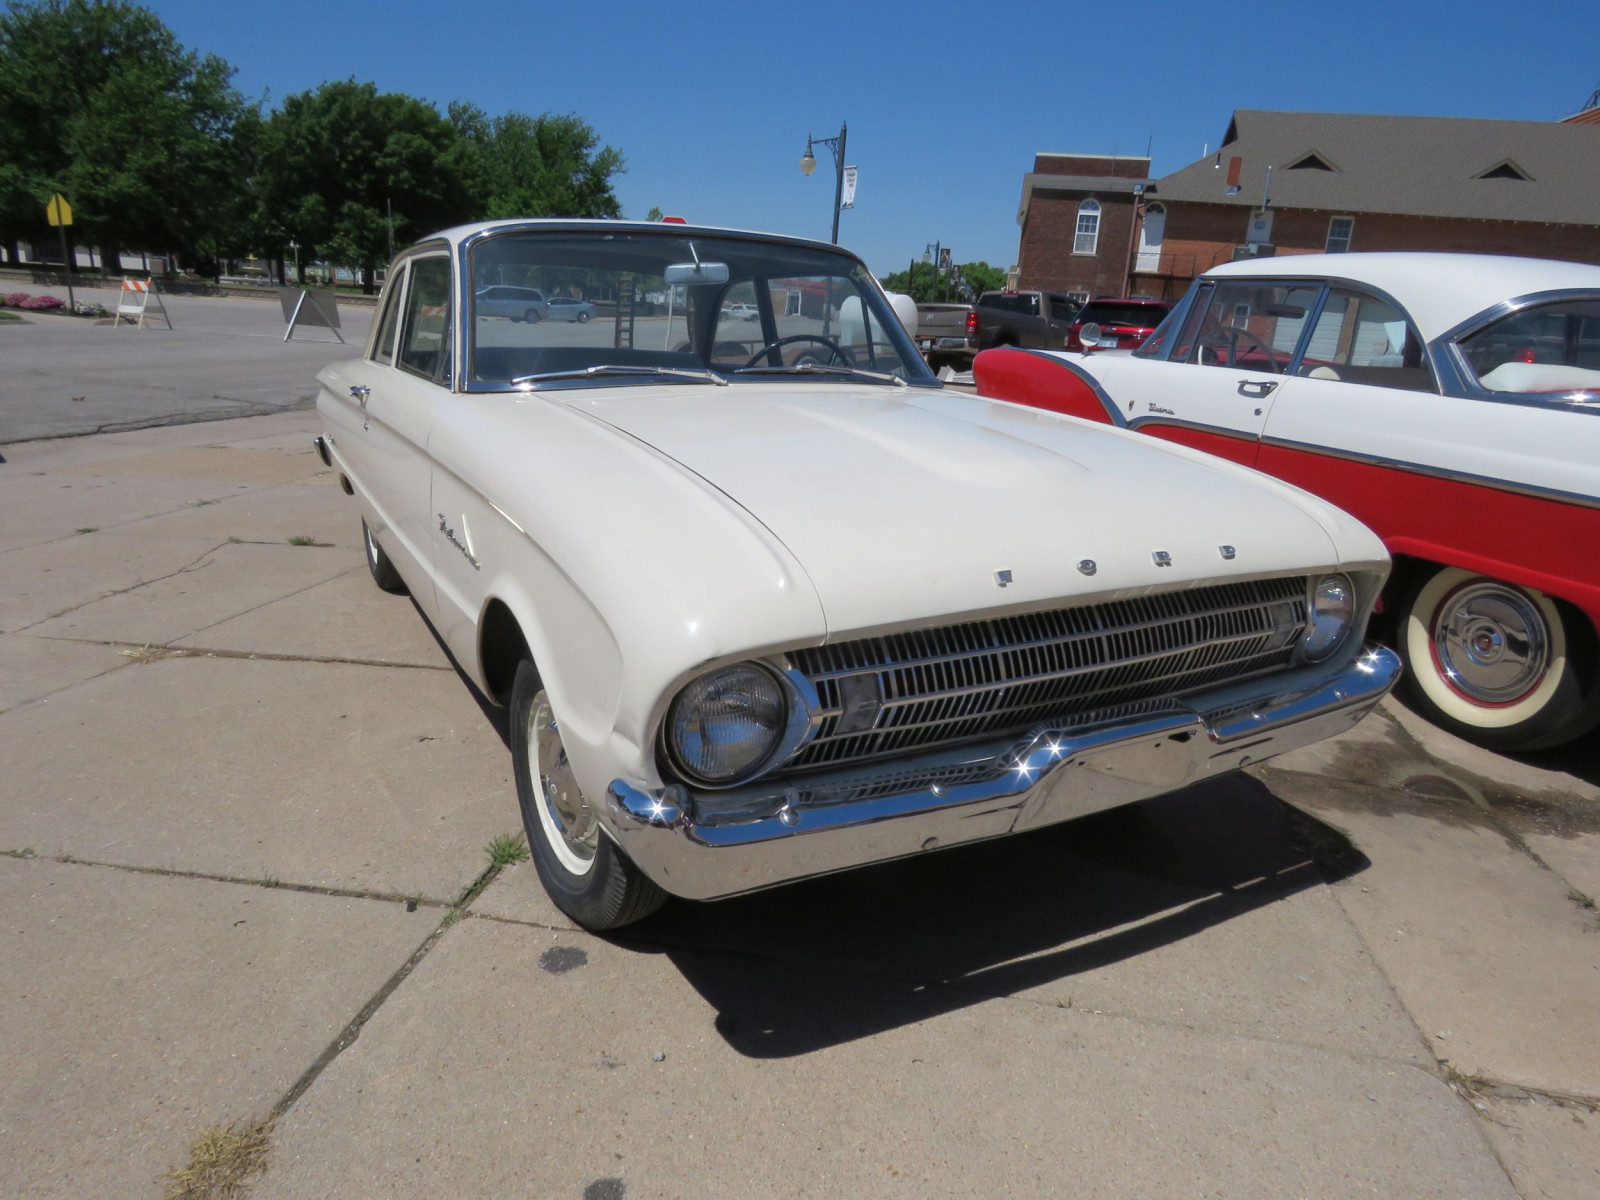 1961 FORD FALCON 2DR SEDAN LESS THAN 10,000 MILES - Image 1